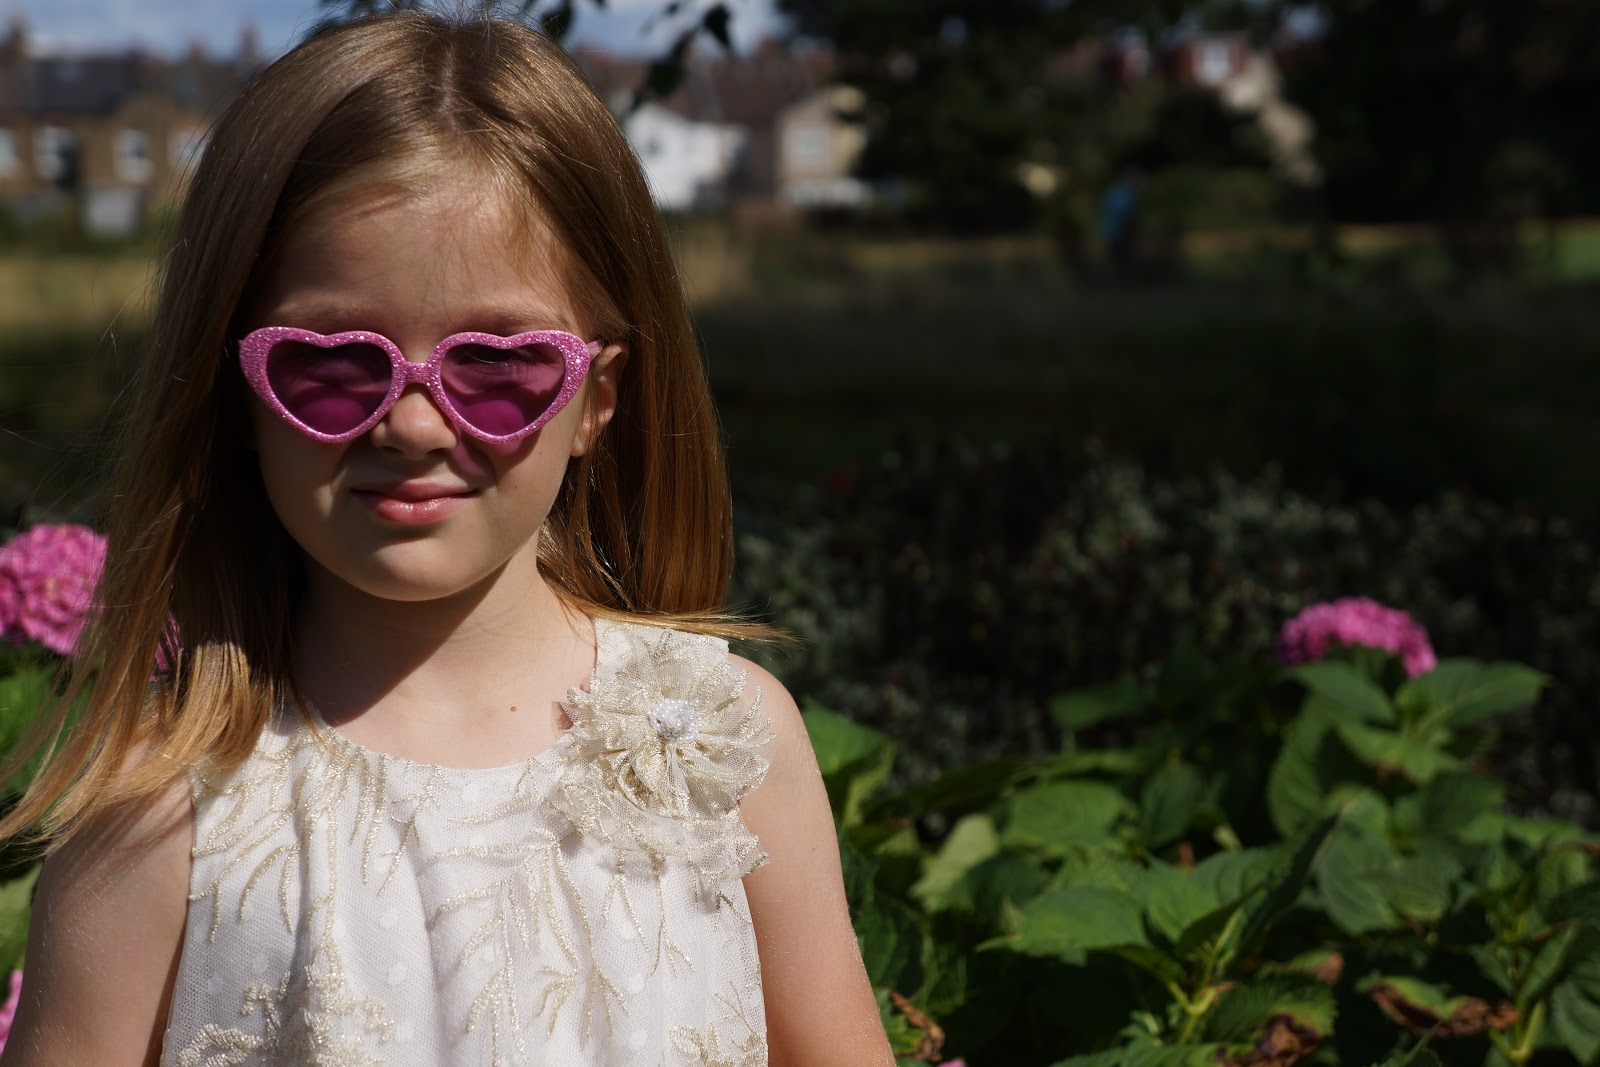 girl with pink heart sunglasses and corsage on David Charles Childrenswear dress